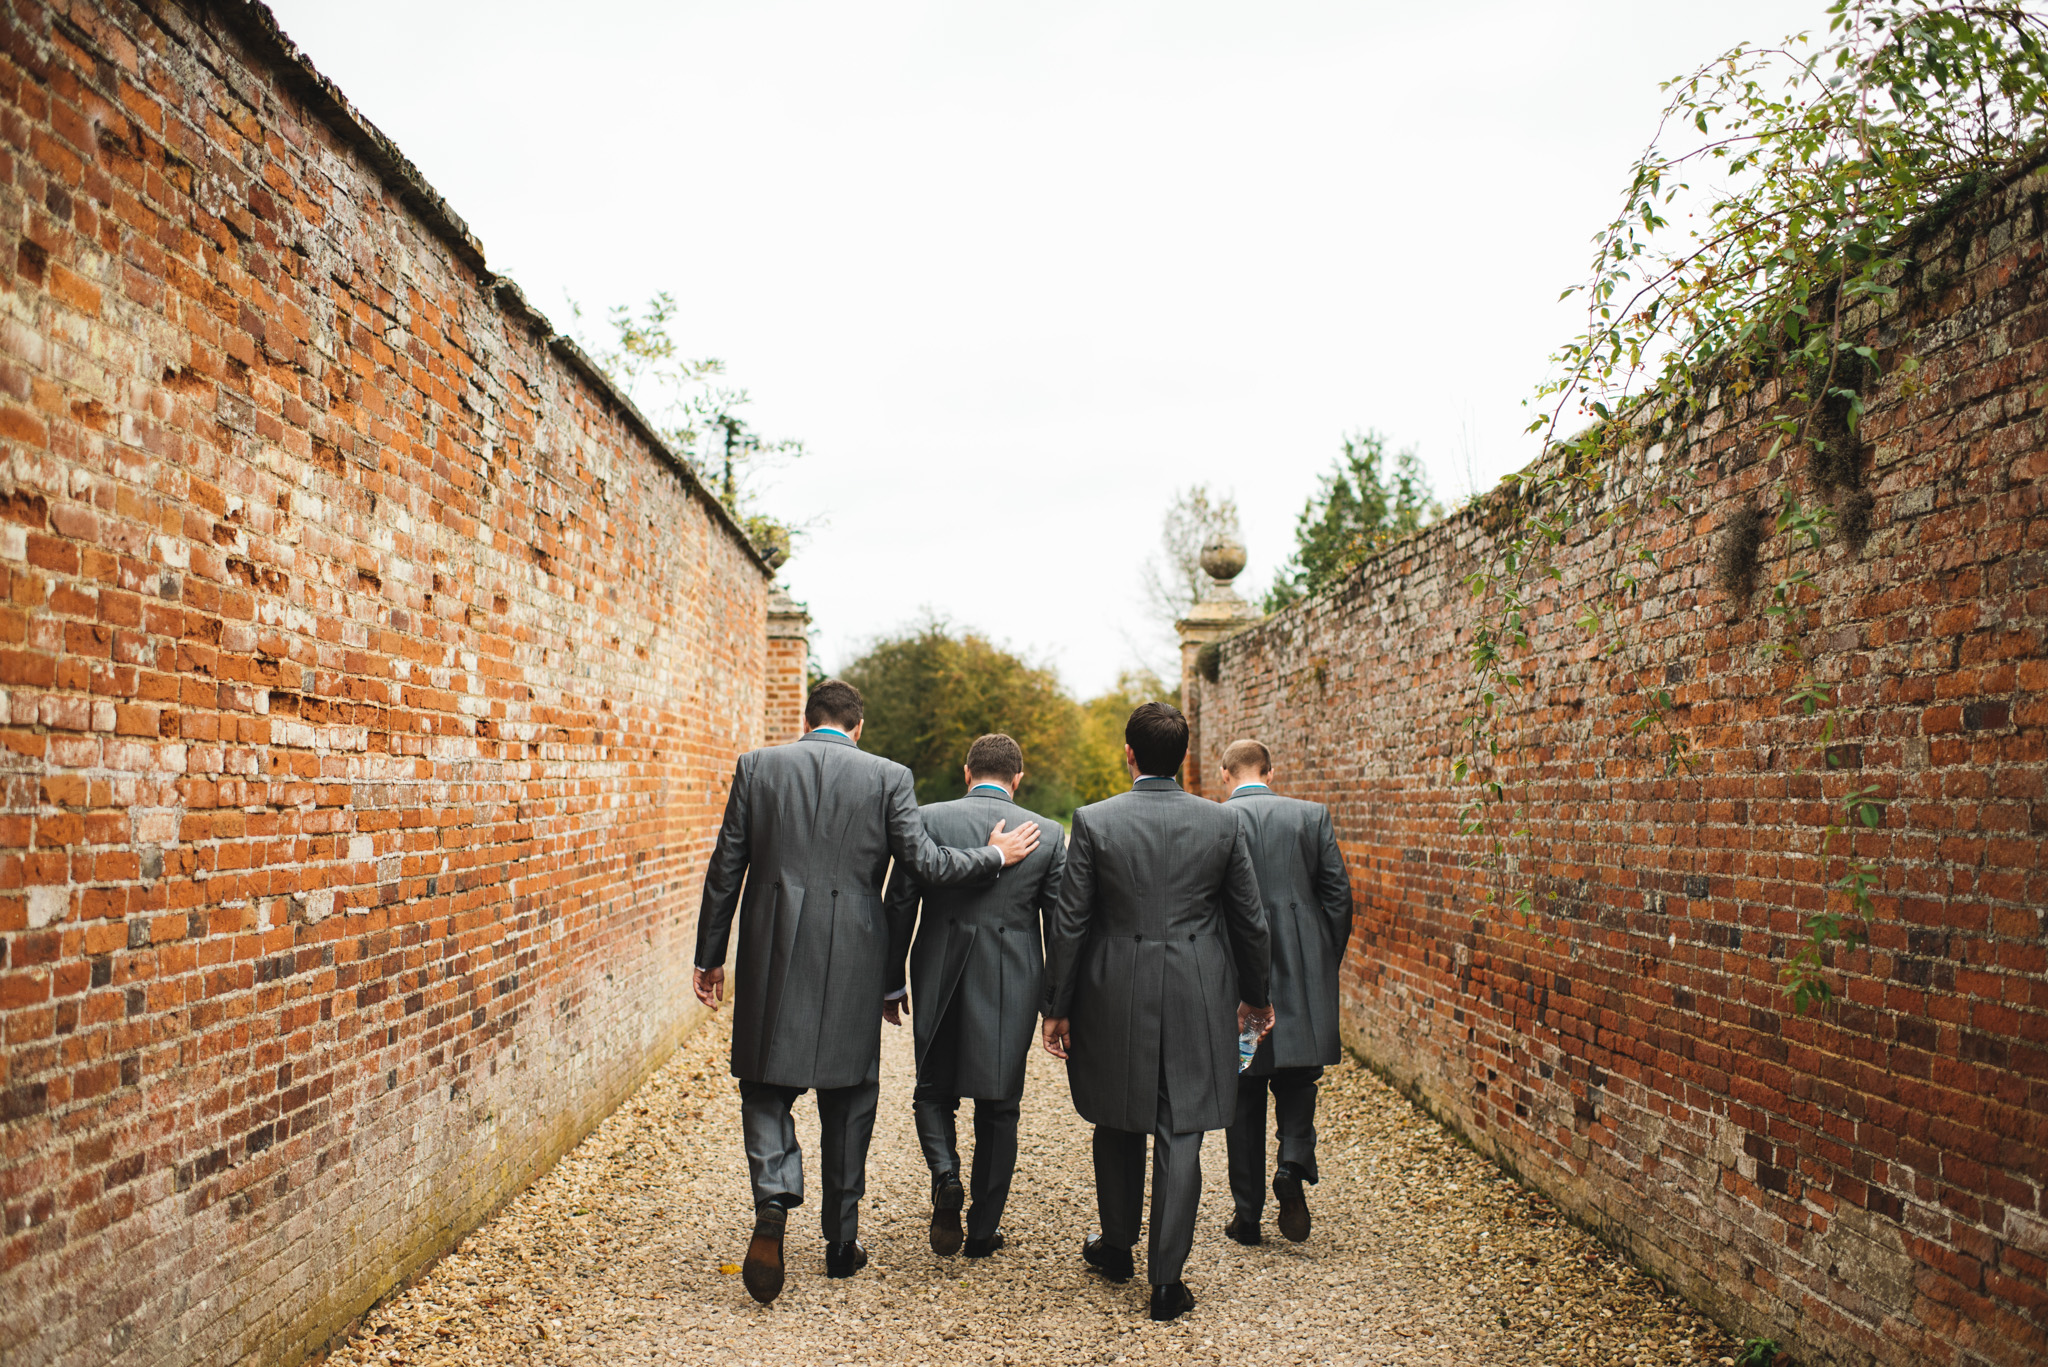 cat-lane-weddings__chicheley-hall-wedding-photography__clw__1110__ETH_8037.jpg